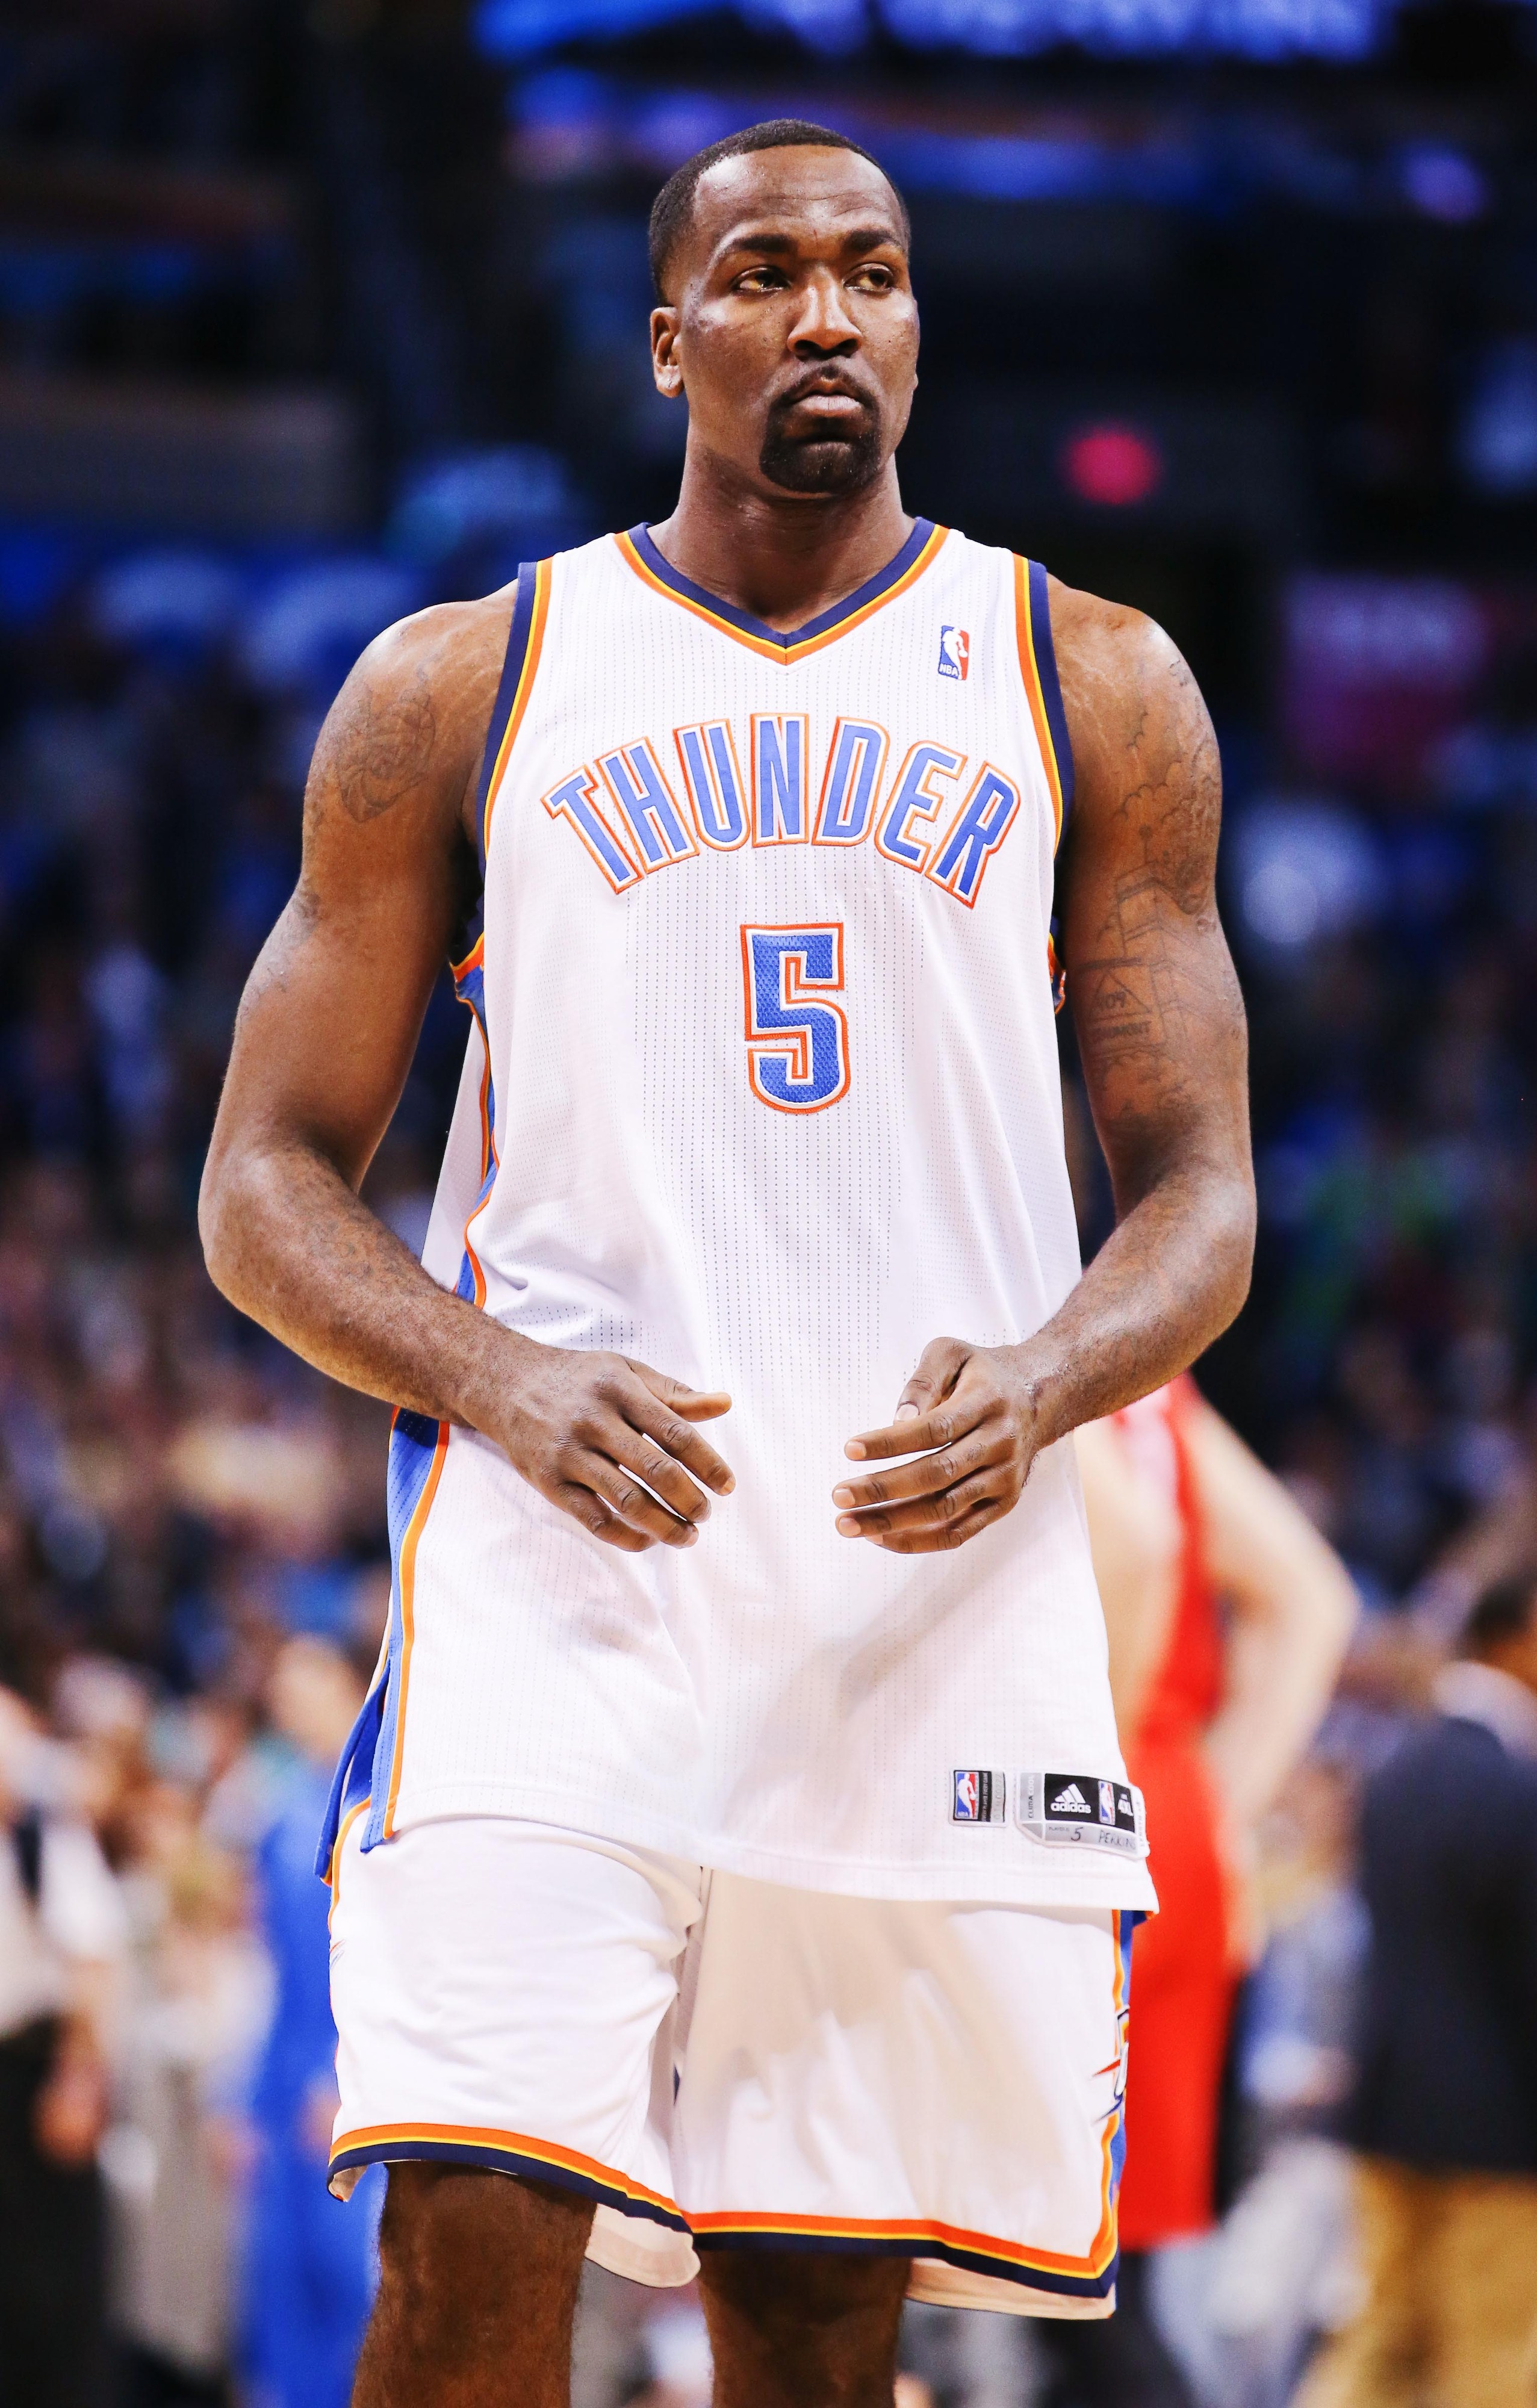 Kendrick Perkins wants to win, so he must be pretty happy with his team's play right now.